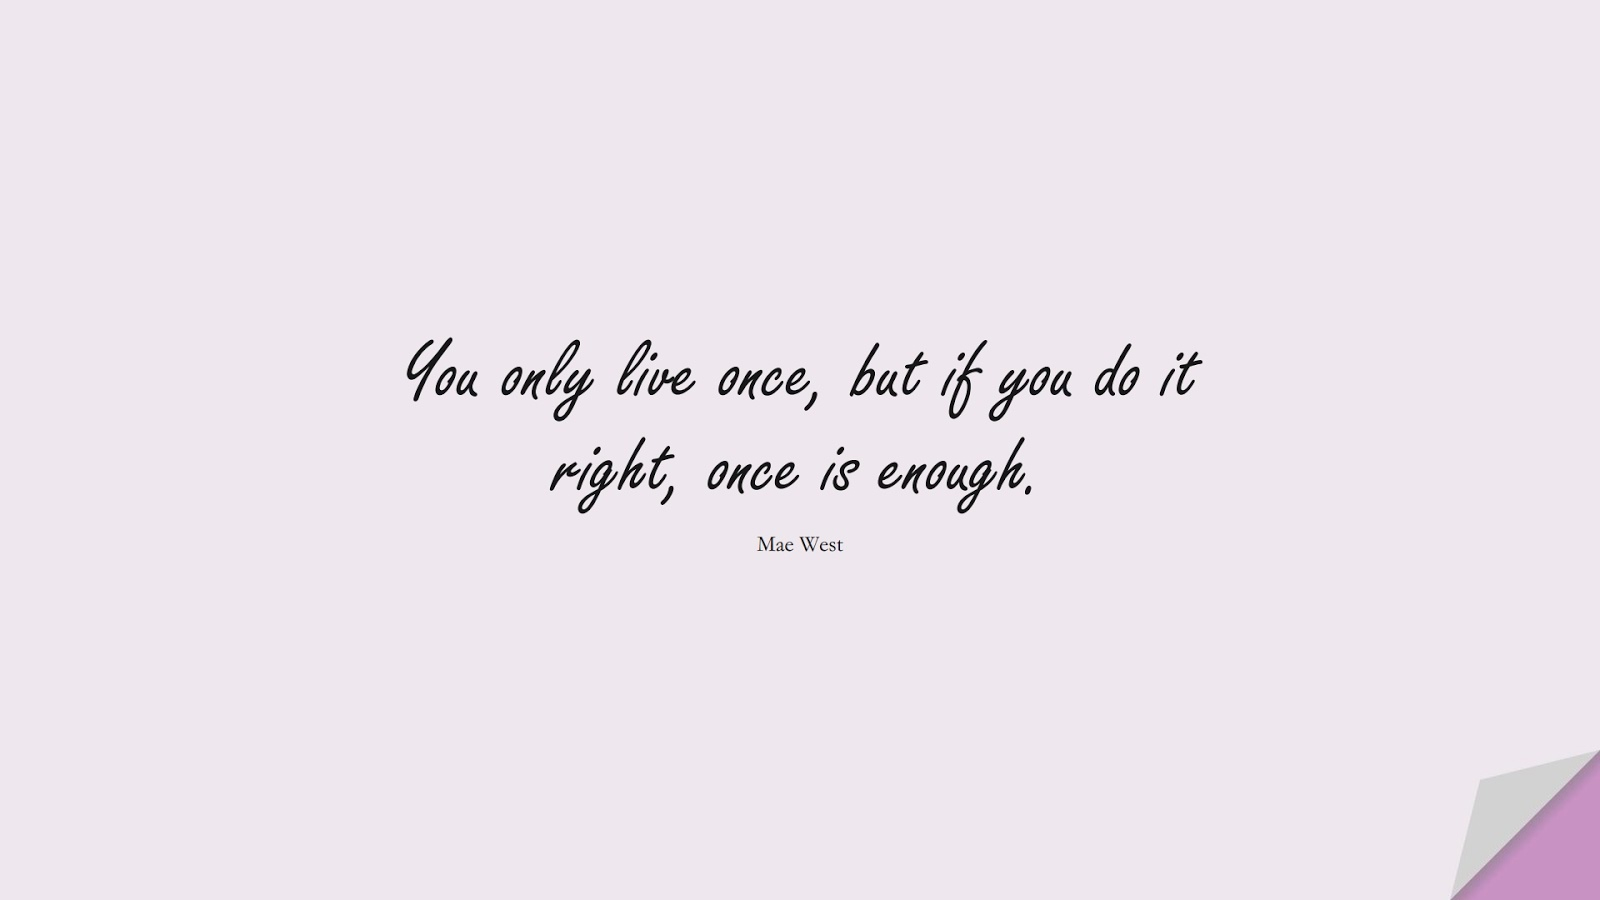 You only live once, but if you do it right, once is enough. (Mae West);  #FamousQuotes